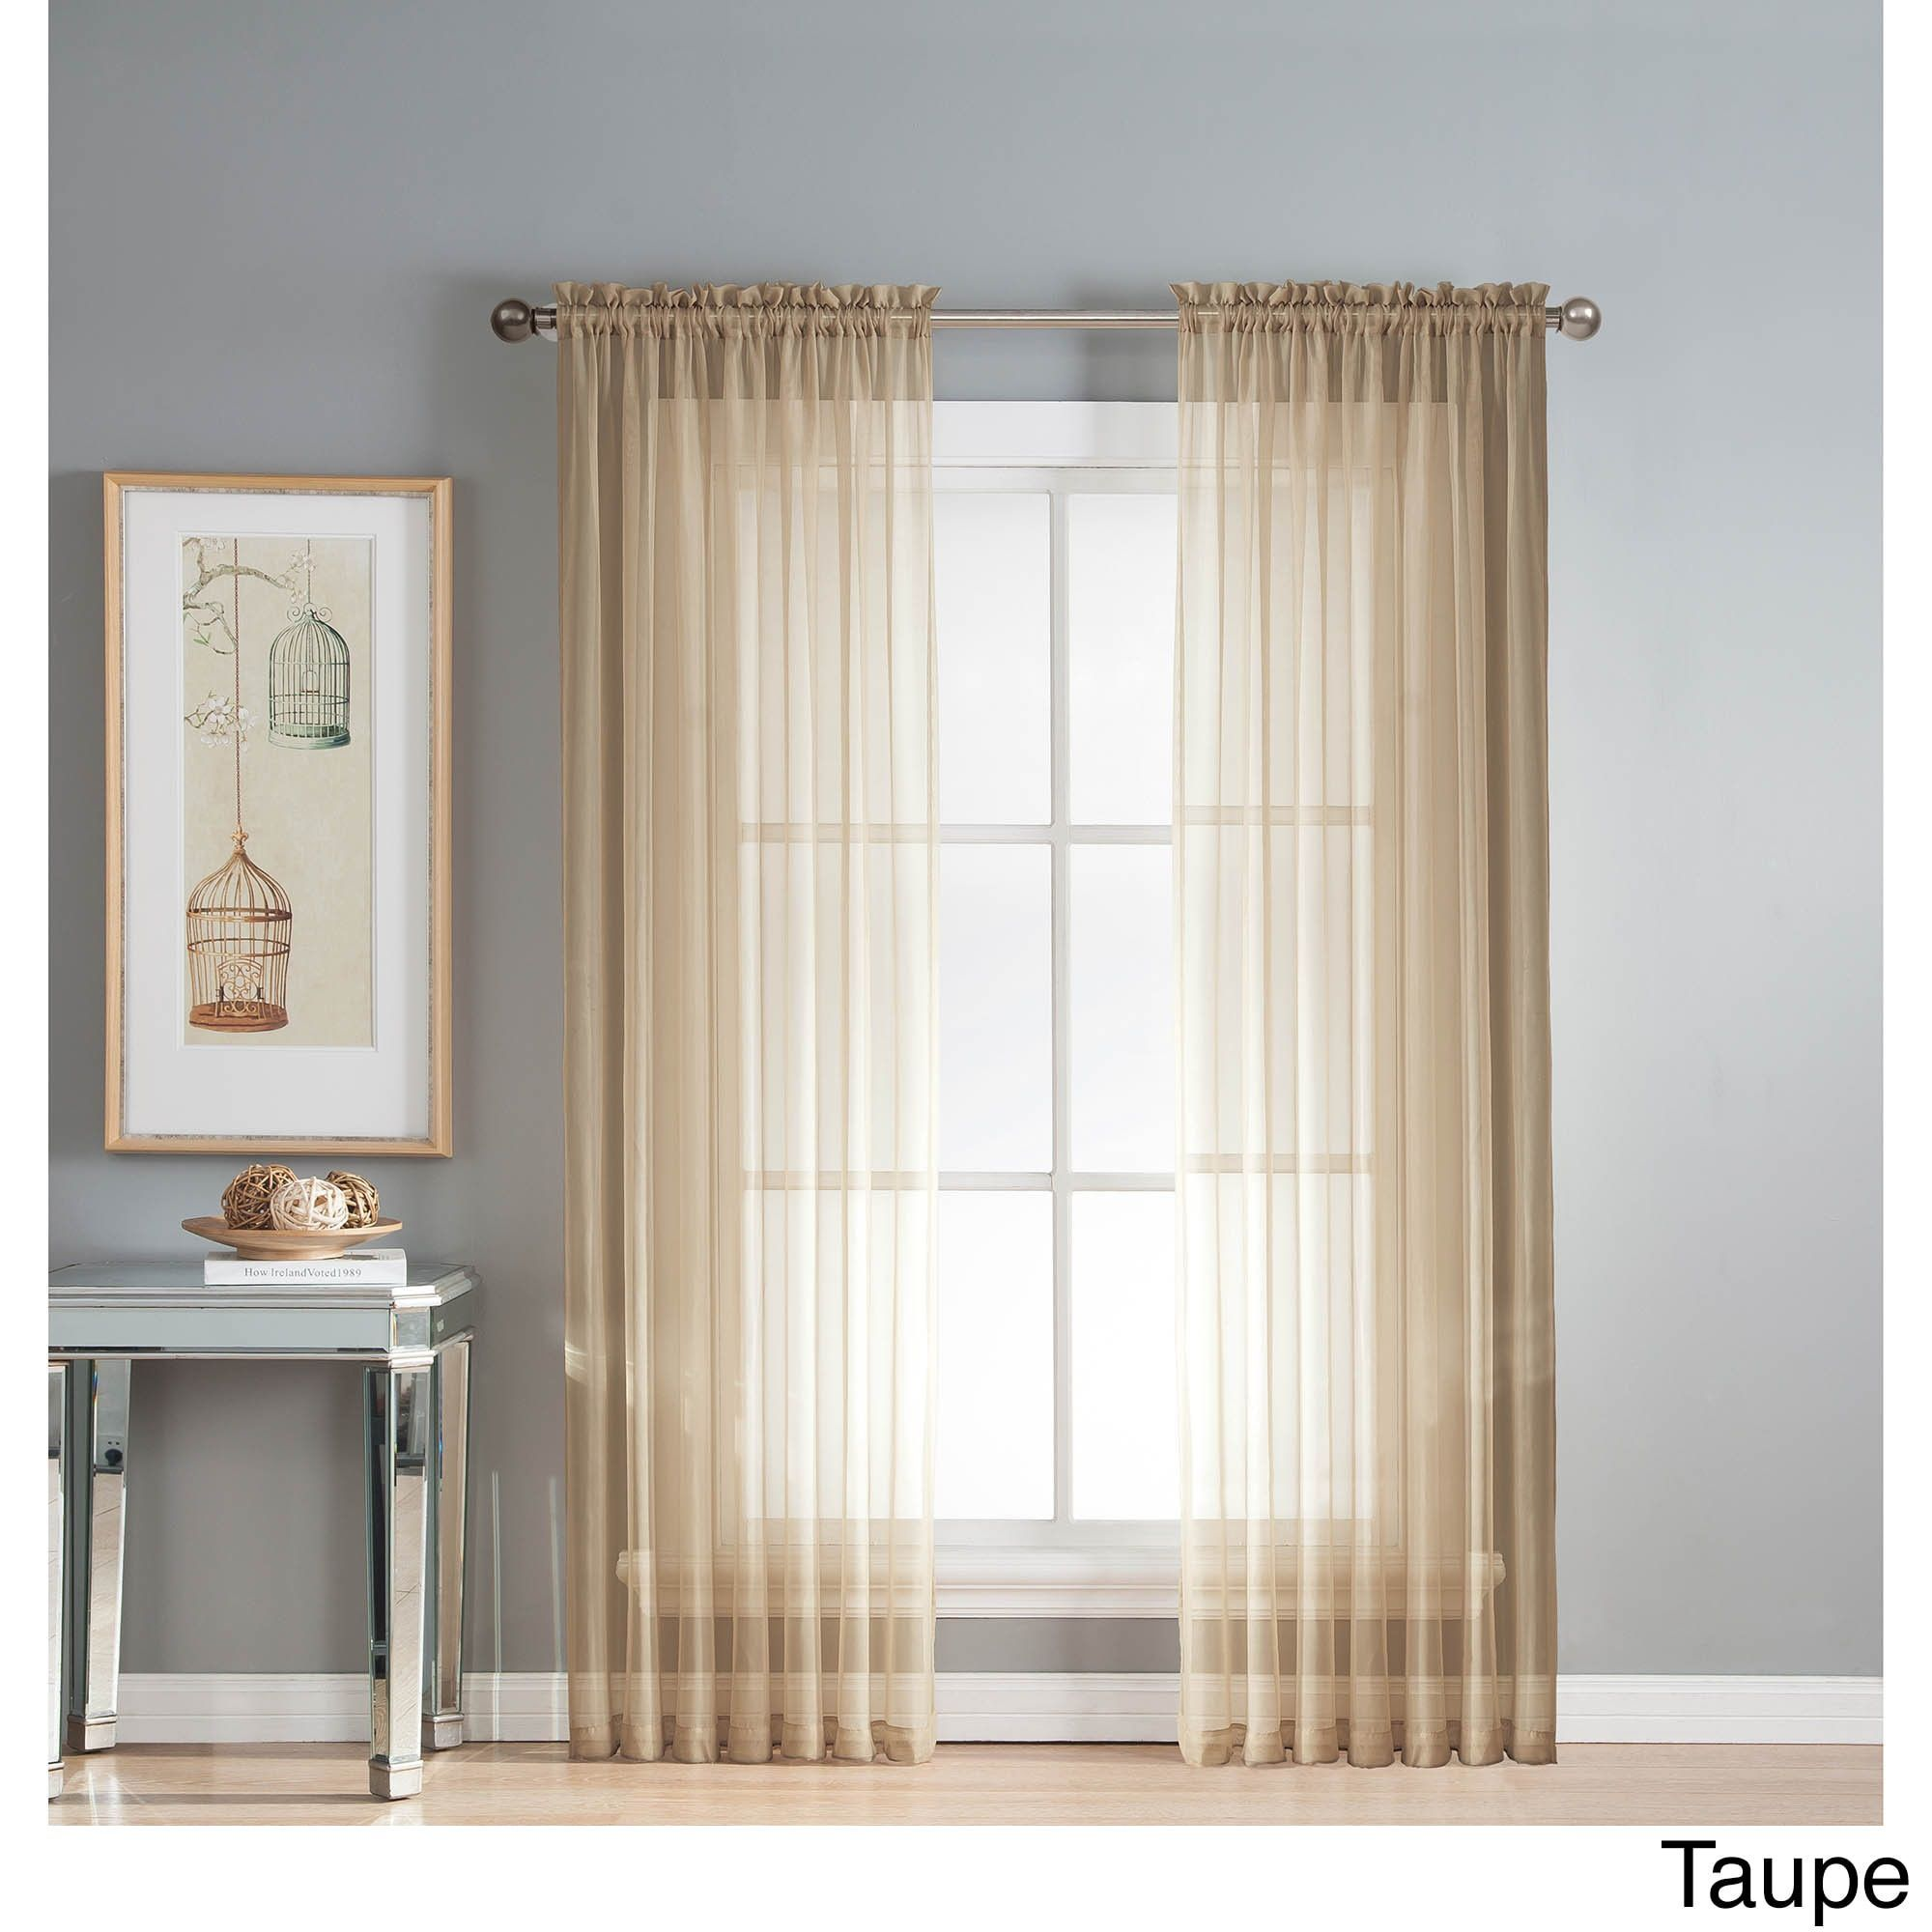 creative home window you valance on vibrant should curtains share room pick long to about attached never treatments panels with twitter inch choices drapes curtain taboos depot